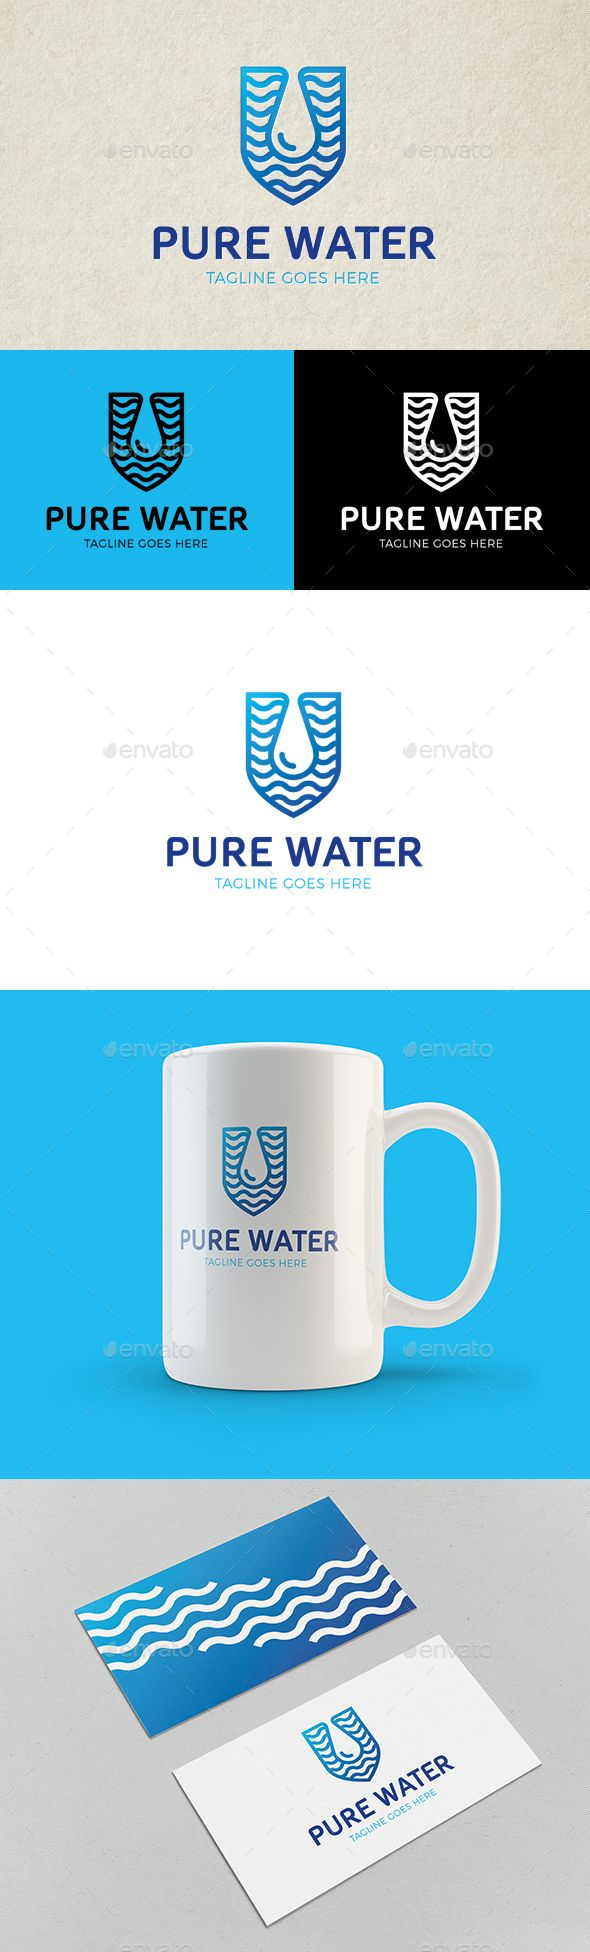 Pure Water Logo Template Vector EPS, AI. Download here: http://graphicriver.net/item/pure-water-logo/14199804?ref=ksioks